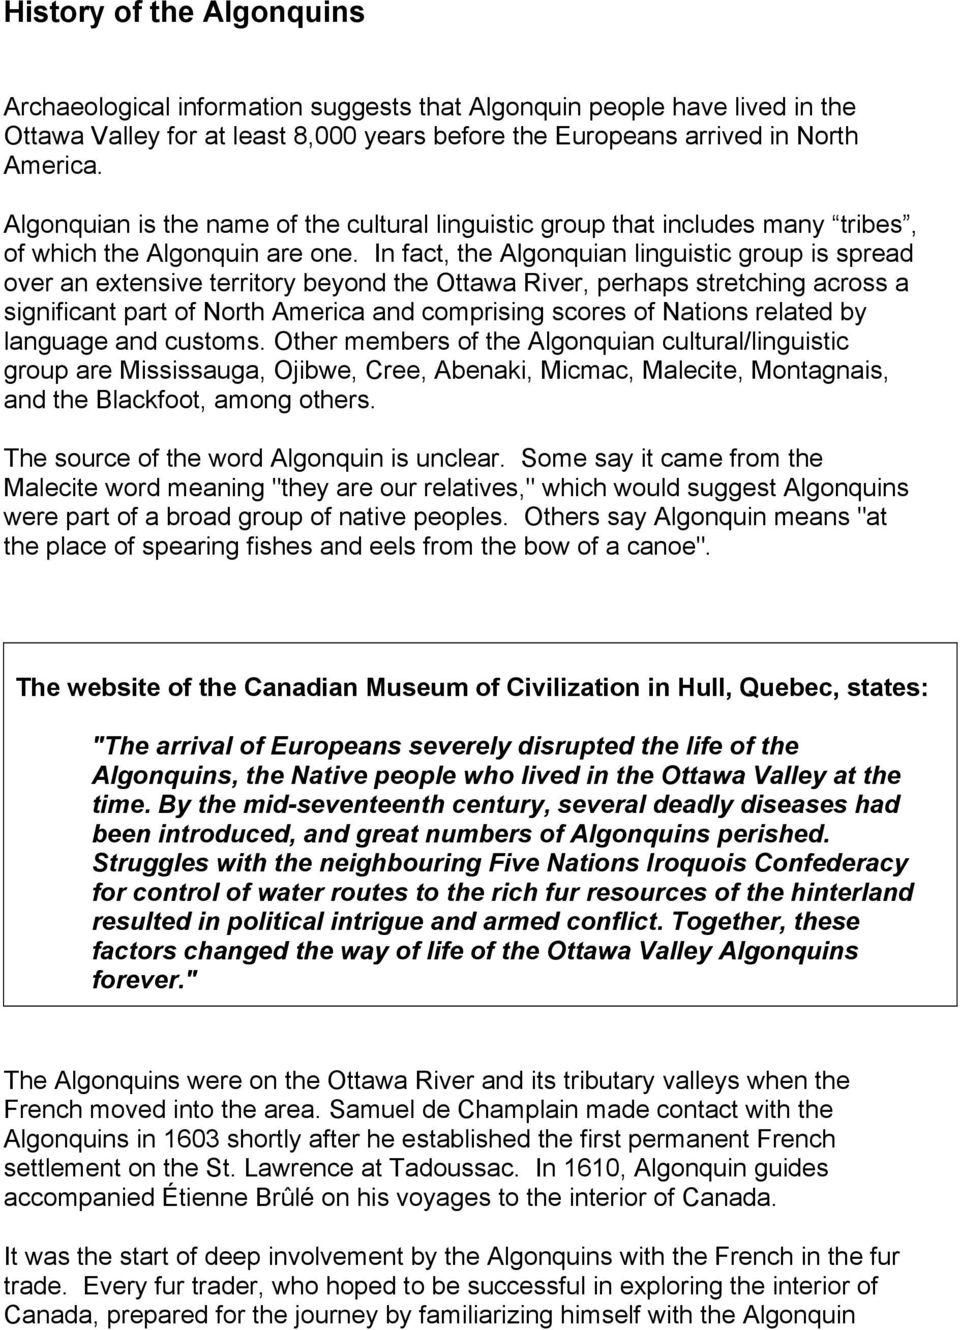 In fact, the Algonquian linguistic group is spread over an extensive territory beyond the Ottawa River, perhaps stretching across a significant part of North America and comprising scores of Nations